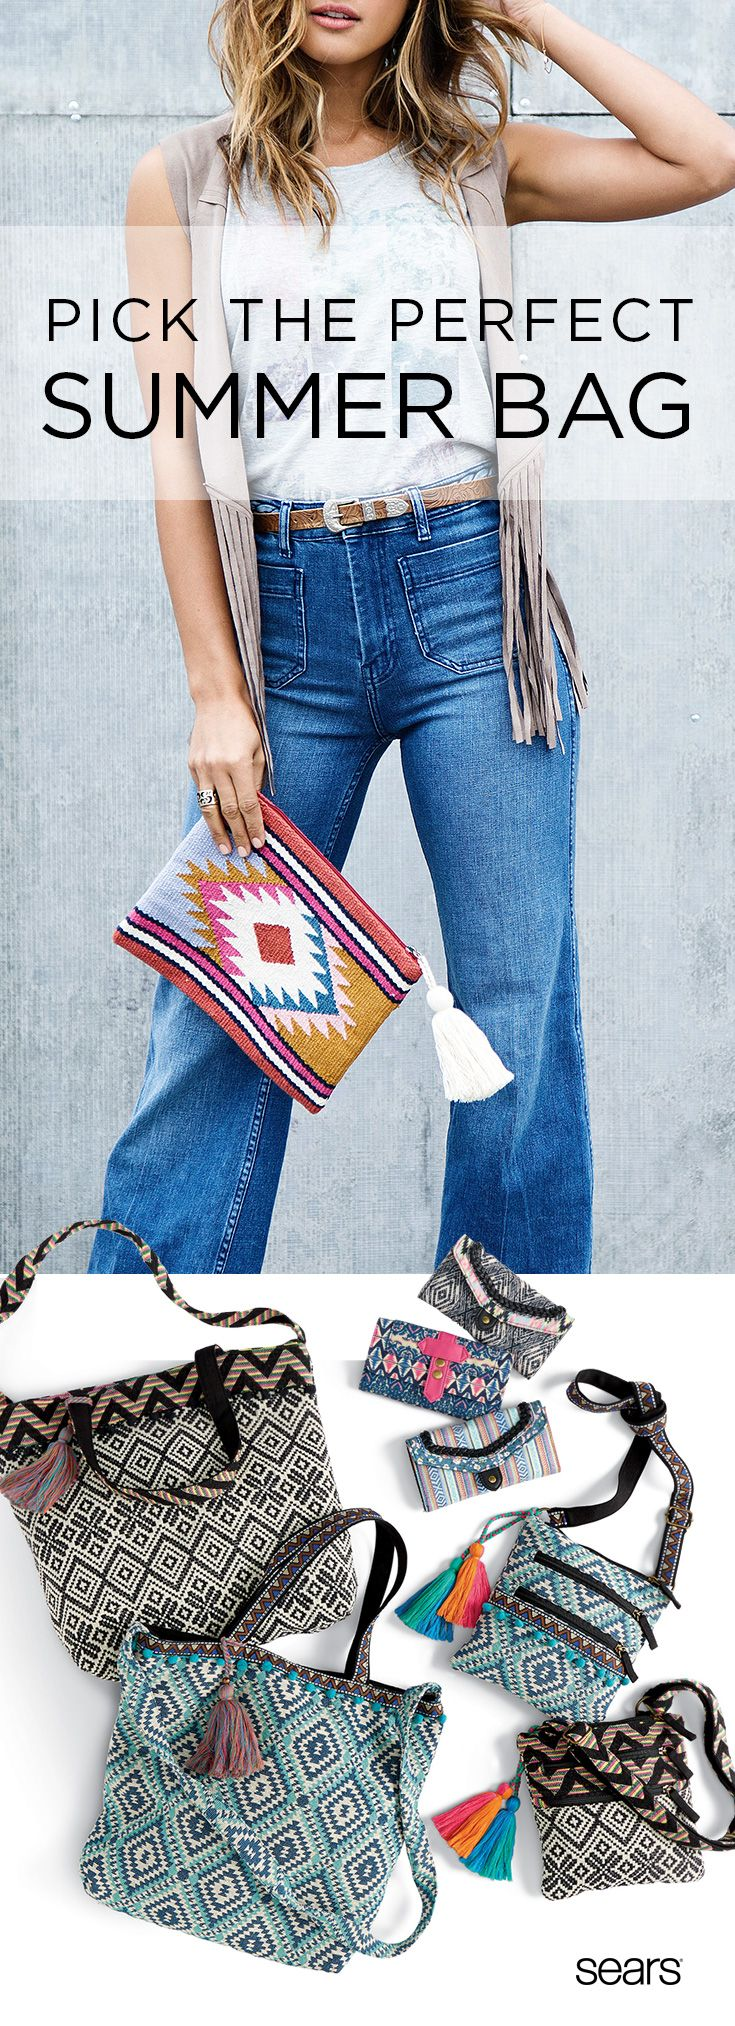 Your summer plans are finally coming together – all you need now is the perfect boho bag. Prepping for a night out? Travel light with the rhapsody clutch wallet or the  rising sun crossbody by Bongo. During the workweek, the Istanbul satchel from Bongo and Global Soul hobo from Canyon River Blues are perfect for toting to the office. And when it's vacation time, pack like a pro with the Cyprus expandable tote from Canyon River Blues. Discover more at Sears – the best tribal-print bags are…